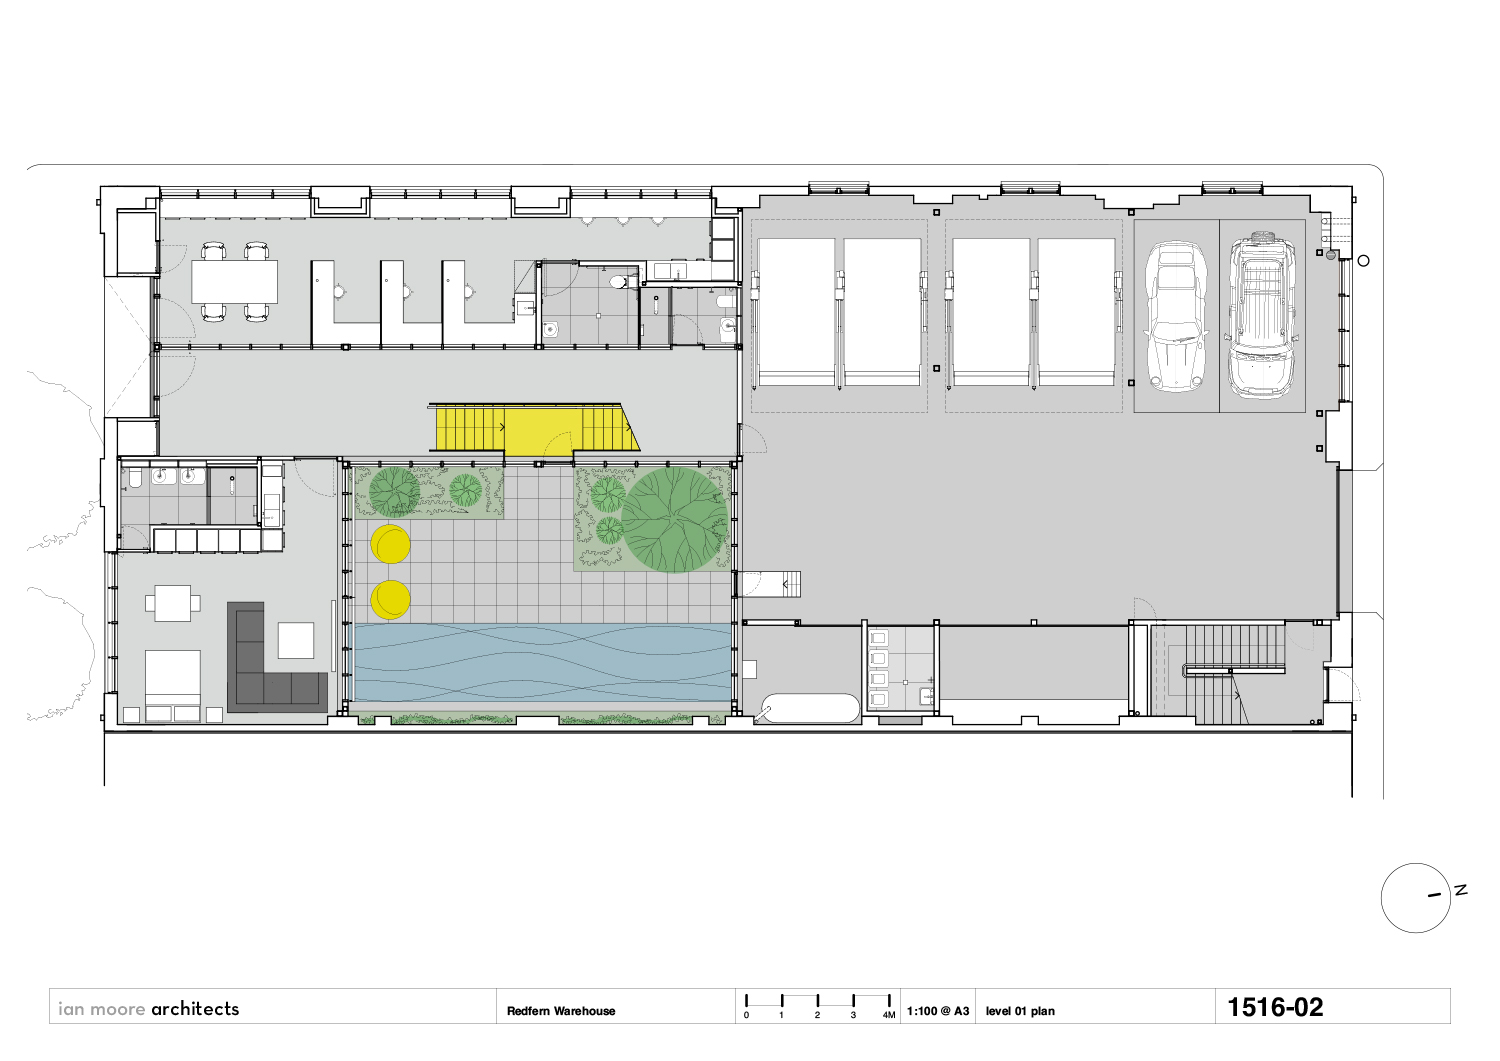 level 01 plan Ian Moore Architects}